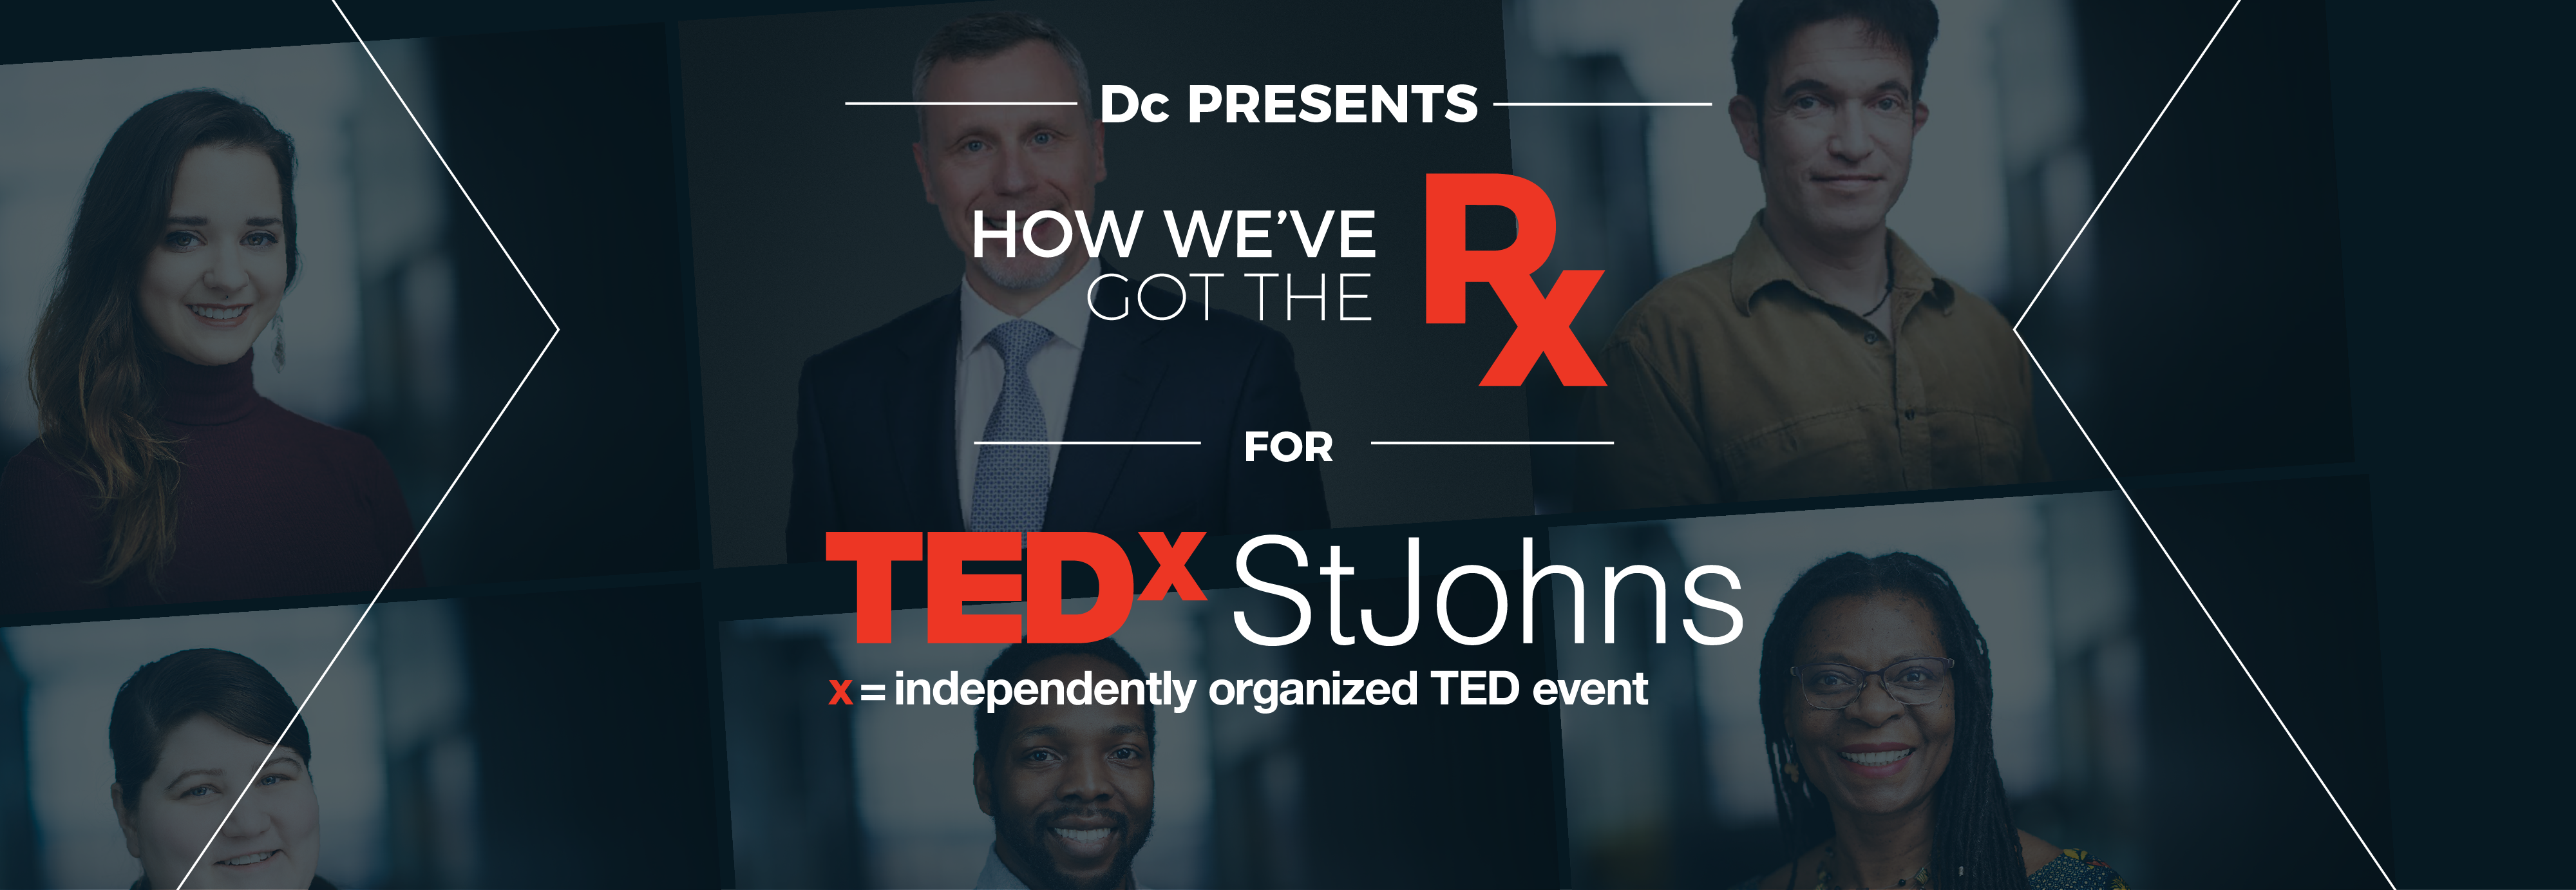 Dc Presents: How We've Got the Rx for TEDxStJohns